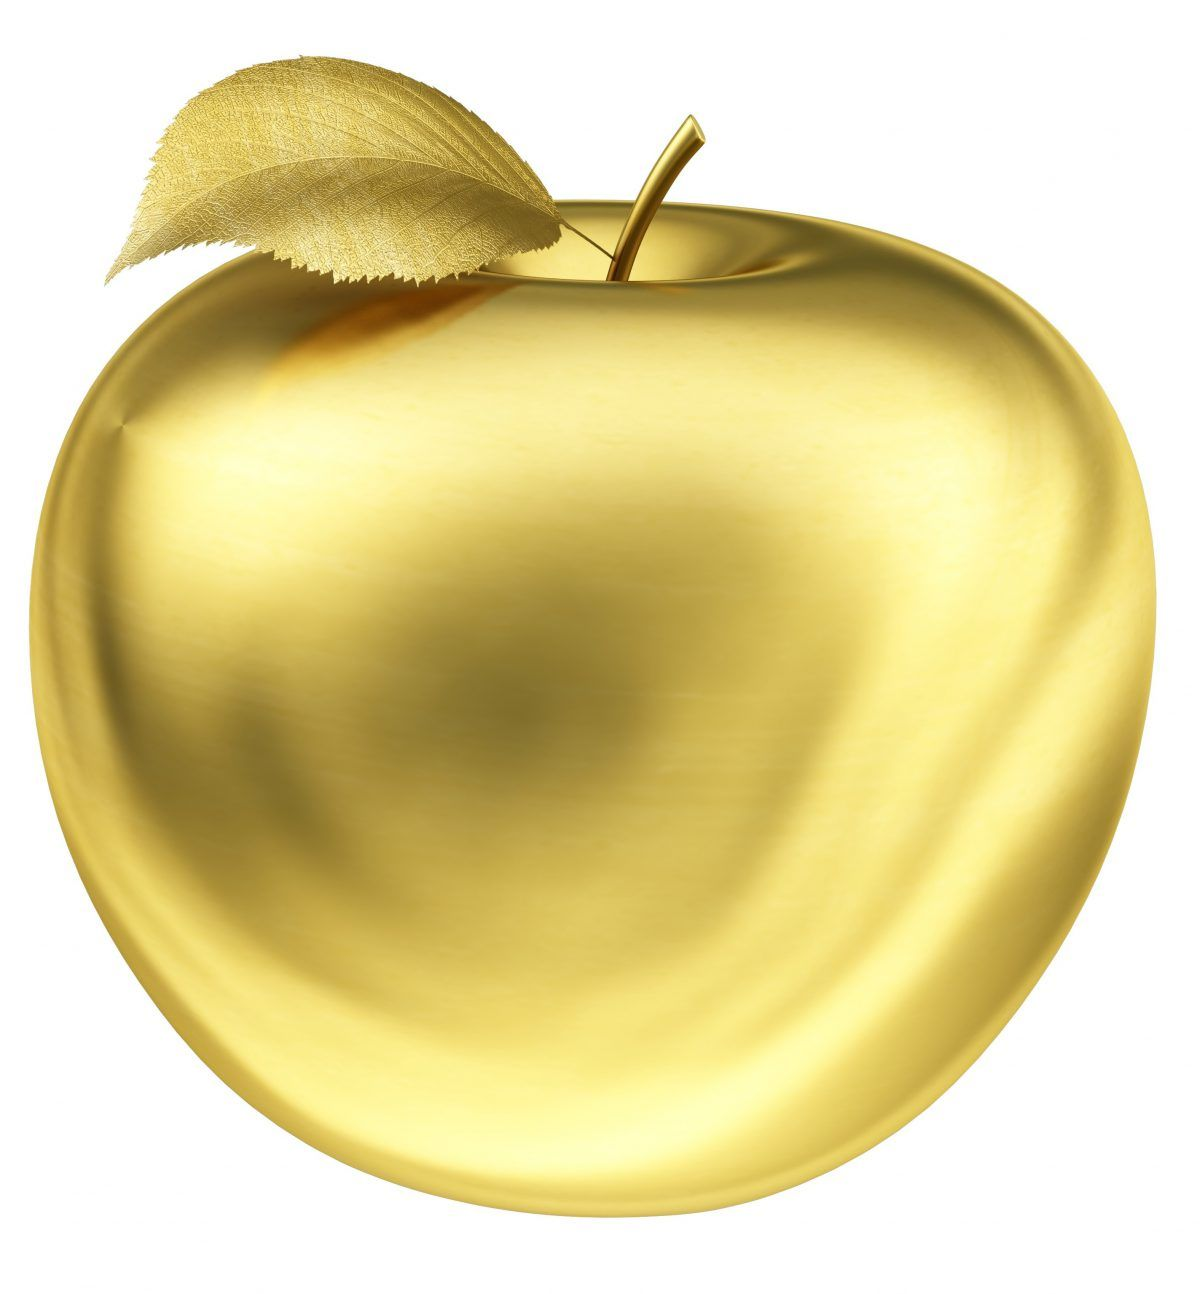 Apple. 3D. Gold apple | Gold apple, Golden apple, Golden